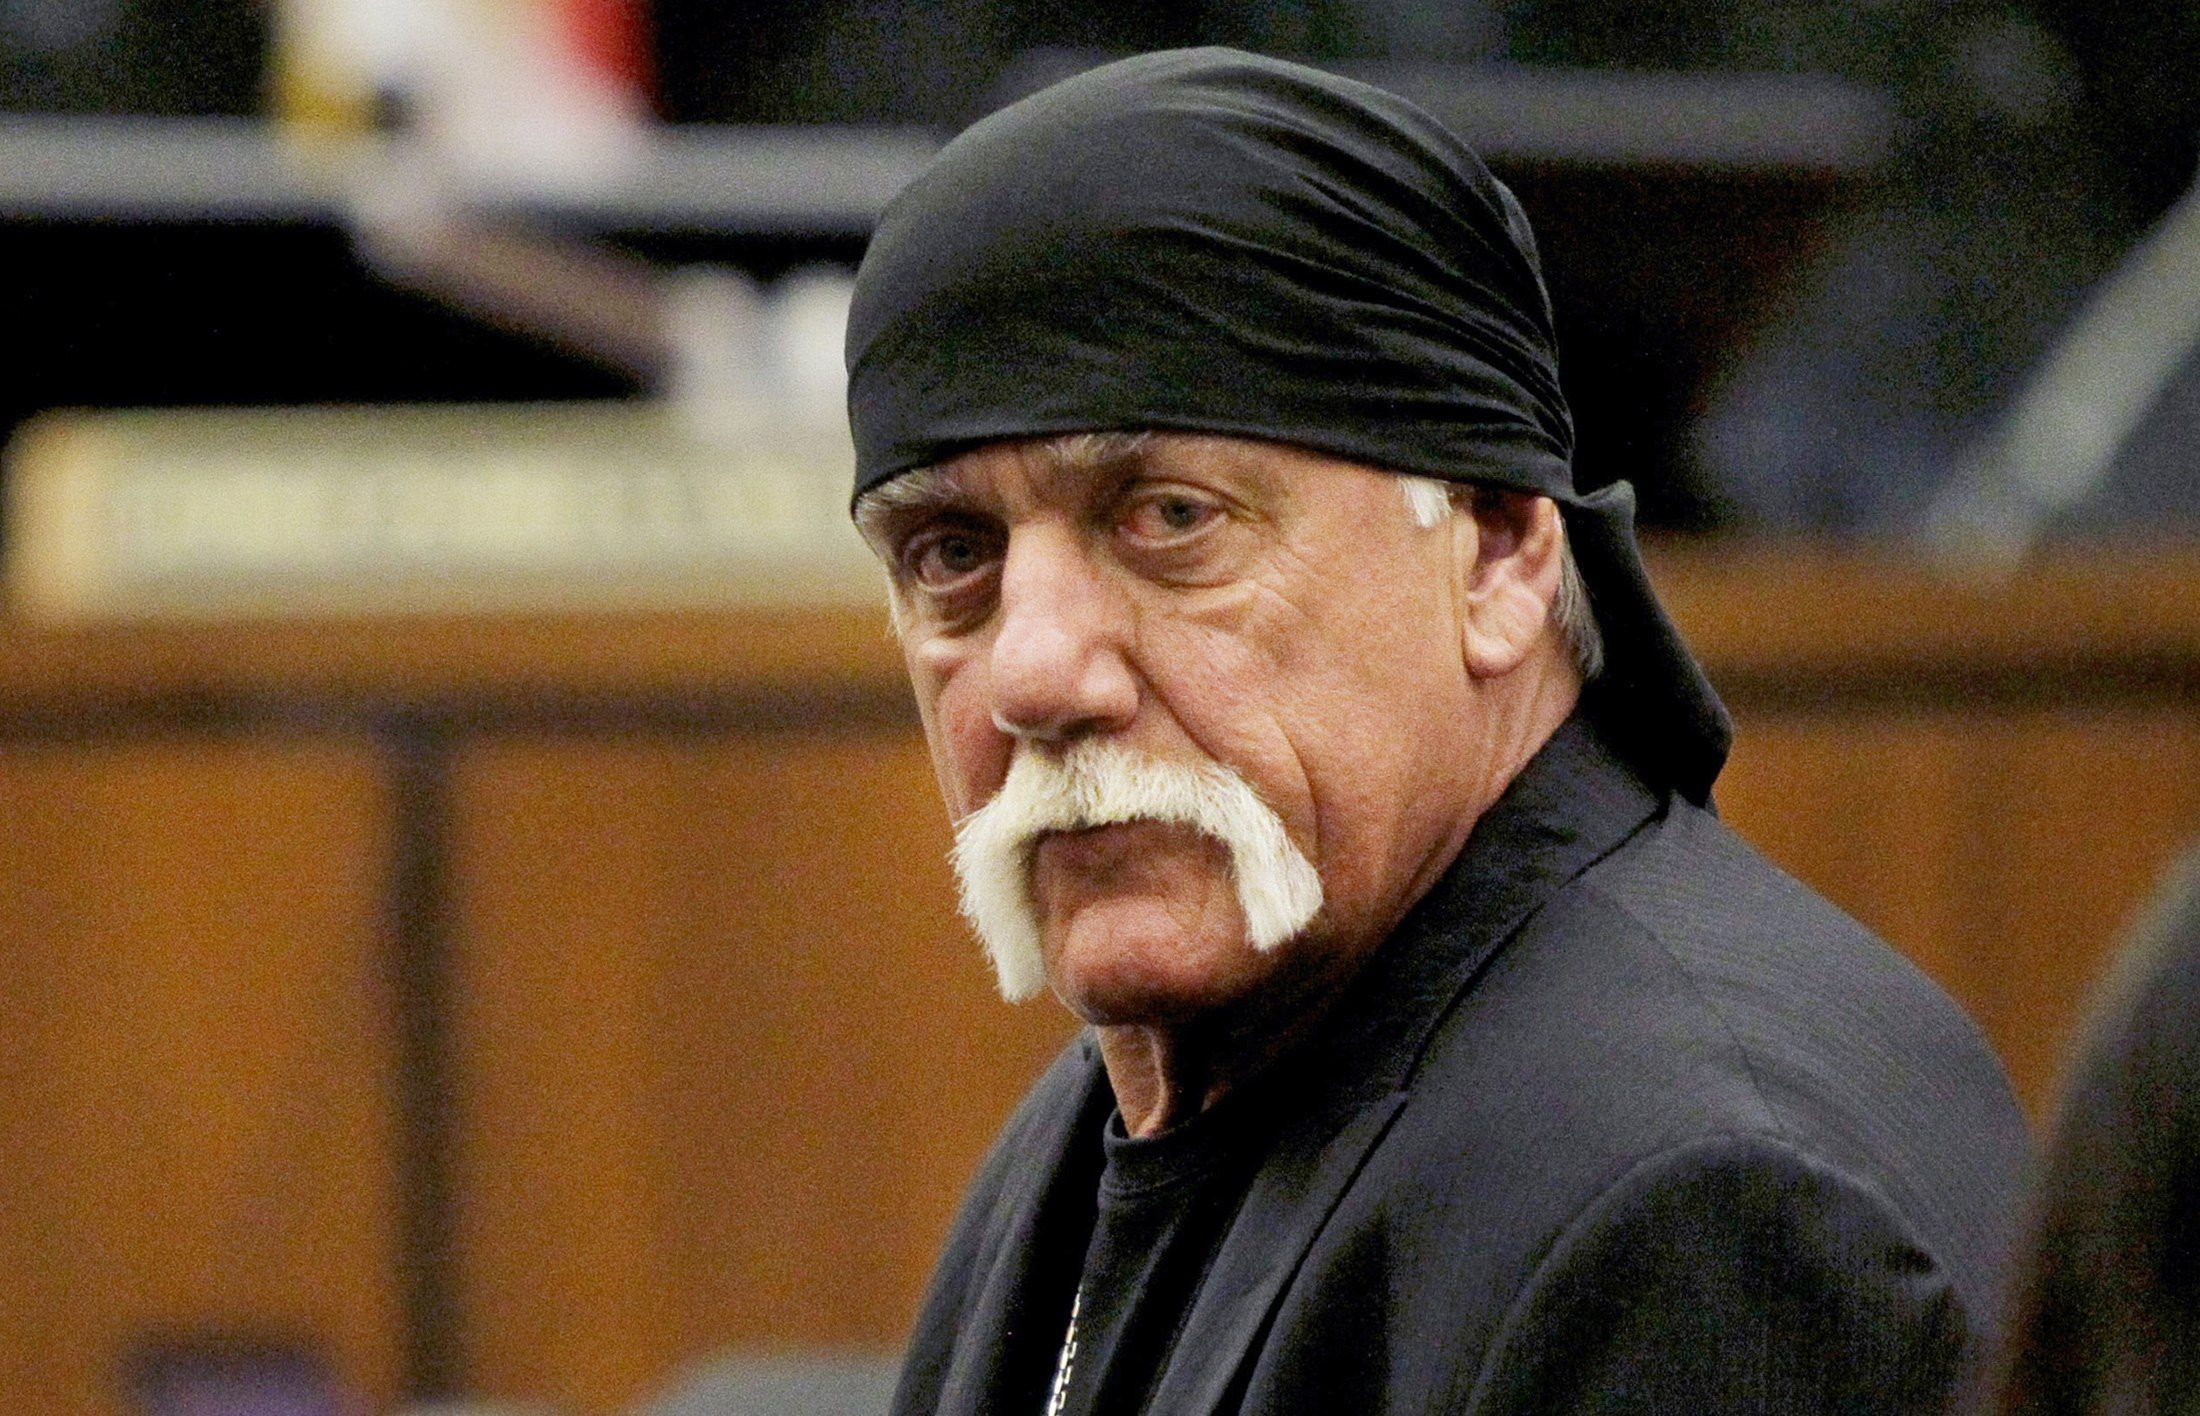 Hulk Hogan Returning To WWE Discussions Confirmed